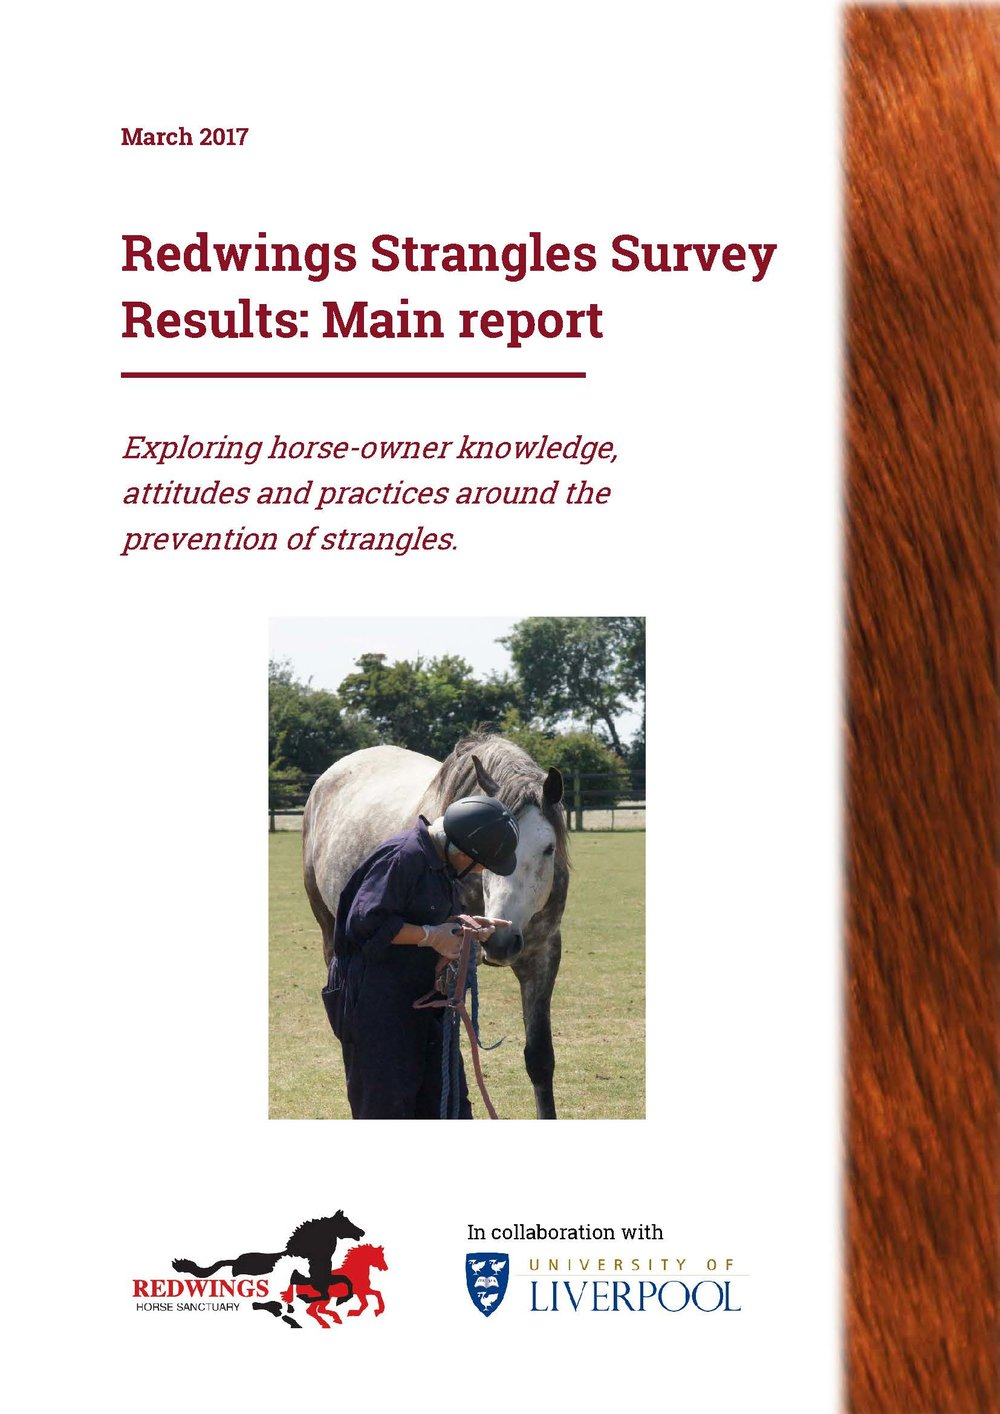 Redwings survey results